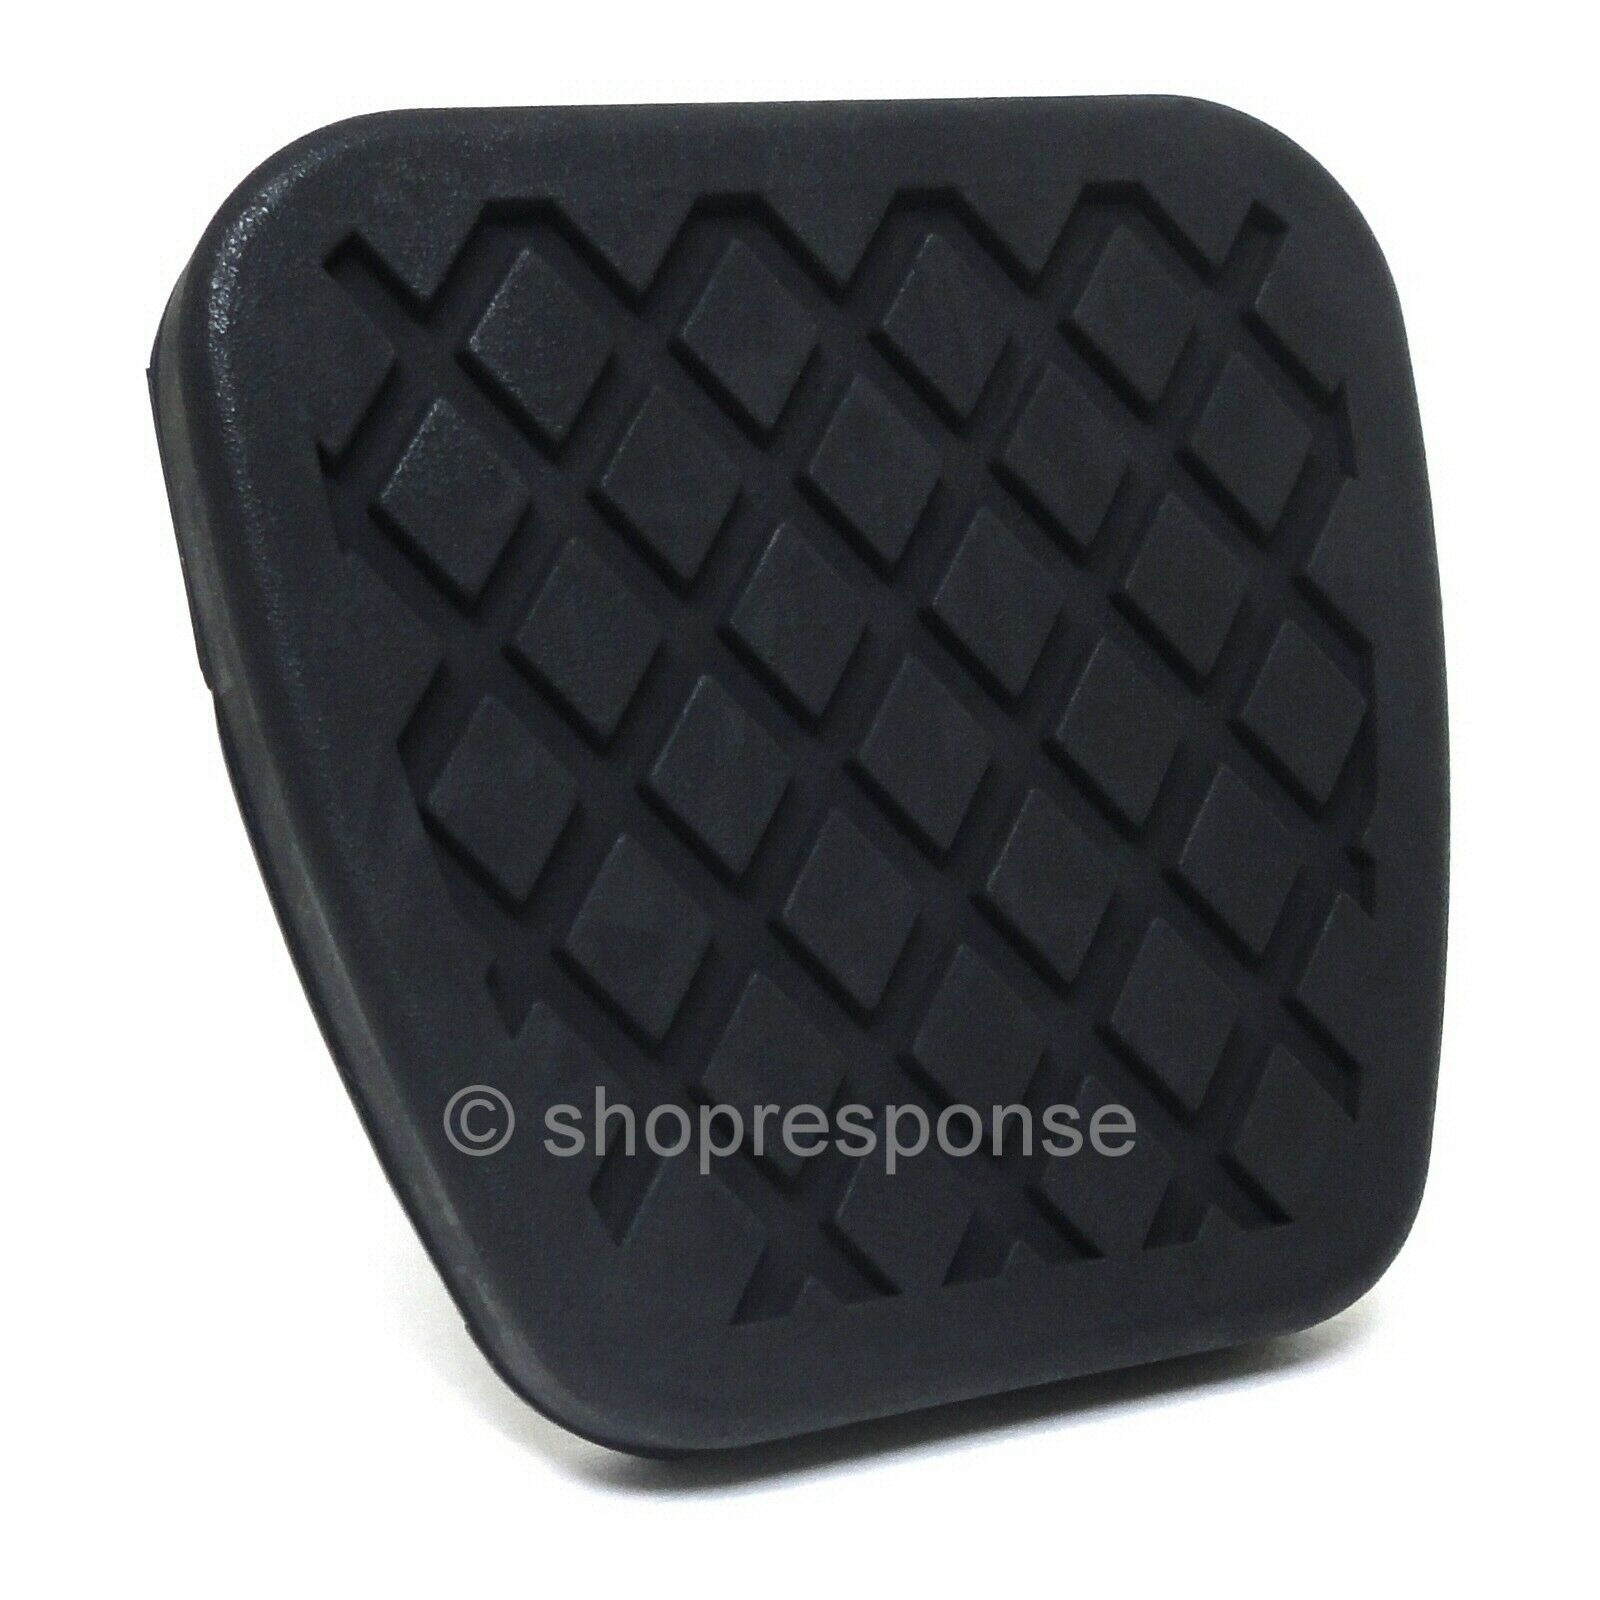 OEM Honda Brake / Clutch Pedal Pad Rubber Cover Manual Transmission Genuine  1 of 1Only 4 available See More